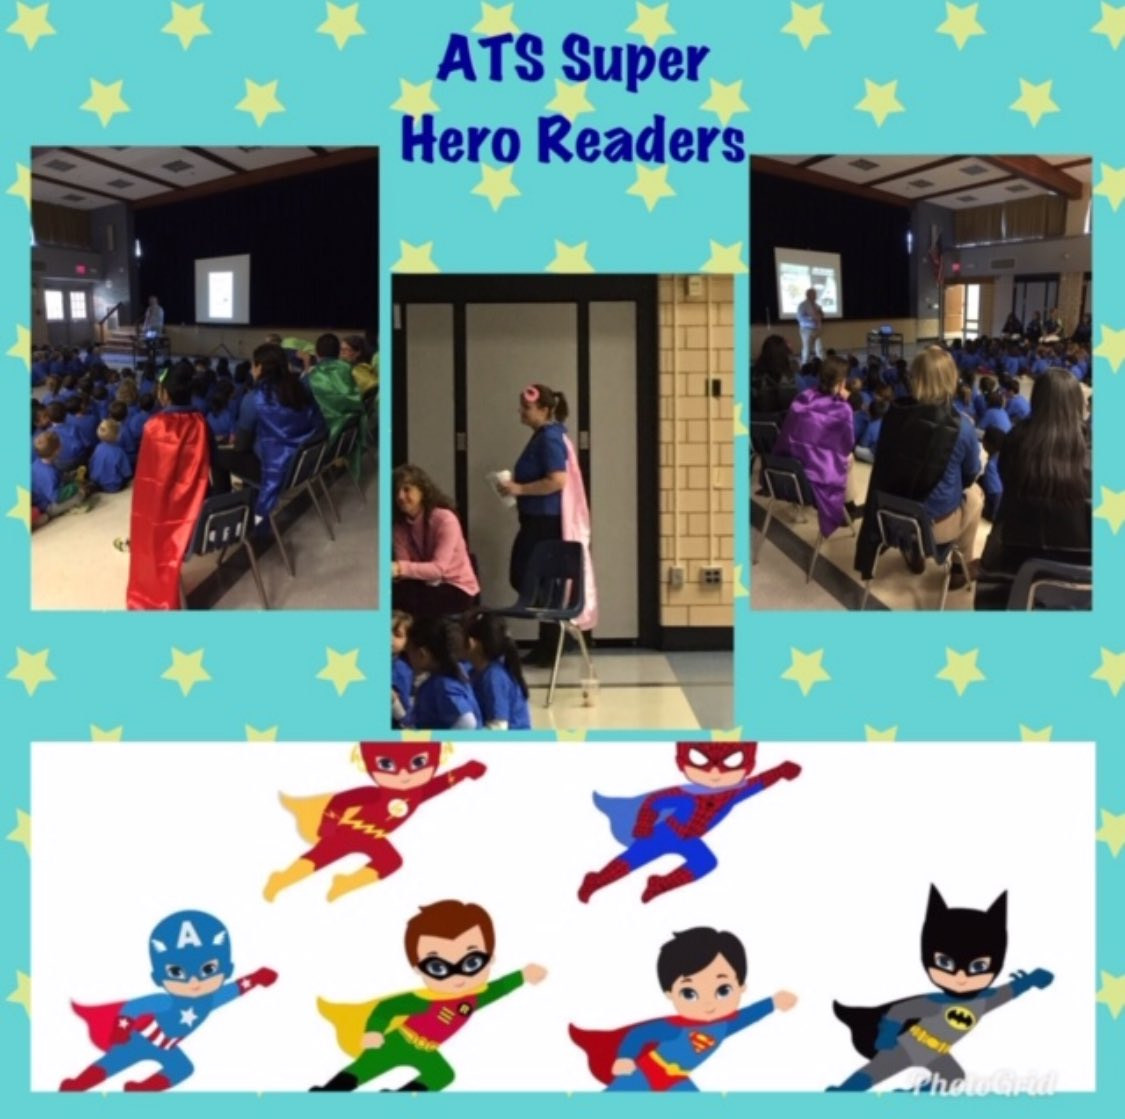 Super hero readers! <a target='_blank' href='http://twitter.com/APSVirginia'>@APSVirginia</a> <a target='_blank' href='http://twitter.com/APSLibrarians'>@APSLibrarians</a> <a target='_blank' href='http://search.twitter.com/search?q=readingcarnival'><a target='_blank' href='https://twitter.com/hashtag/readingcarnival?src=hash'>#readingcarnival</a></a> <a target='_blank' href='http://search.twitter.com/search?q=40yearsofexcellence'><a target='_blank' href='https://twitter.com/hashtag/40yearsofexcellence?src=hash'>#40yearsofexcellence</a></a> <a target='_blank' href='https://t.co/5ahAnbD3HY'>https://t.co/5ahAnbD3HY</a>